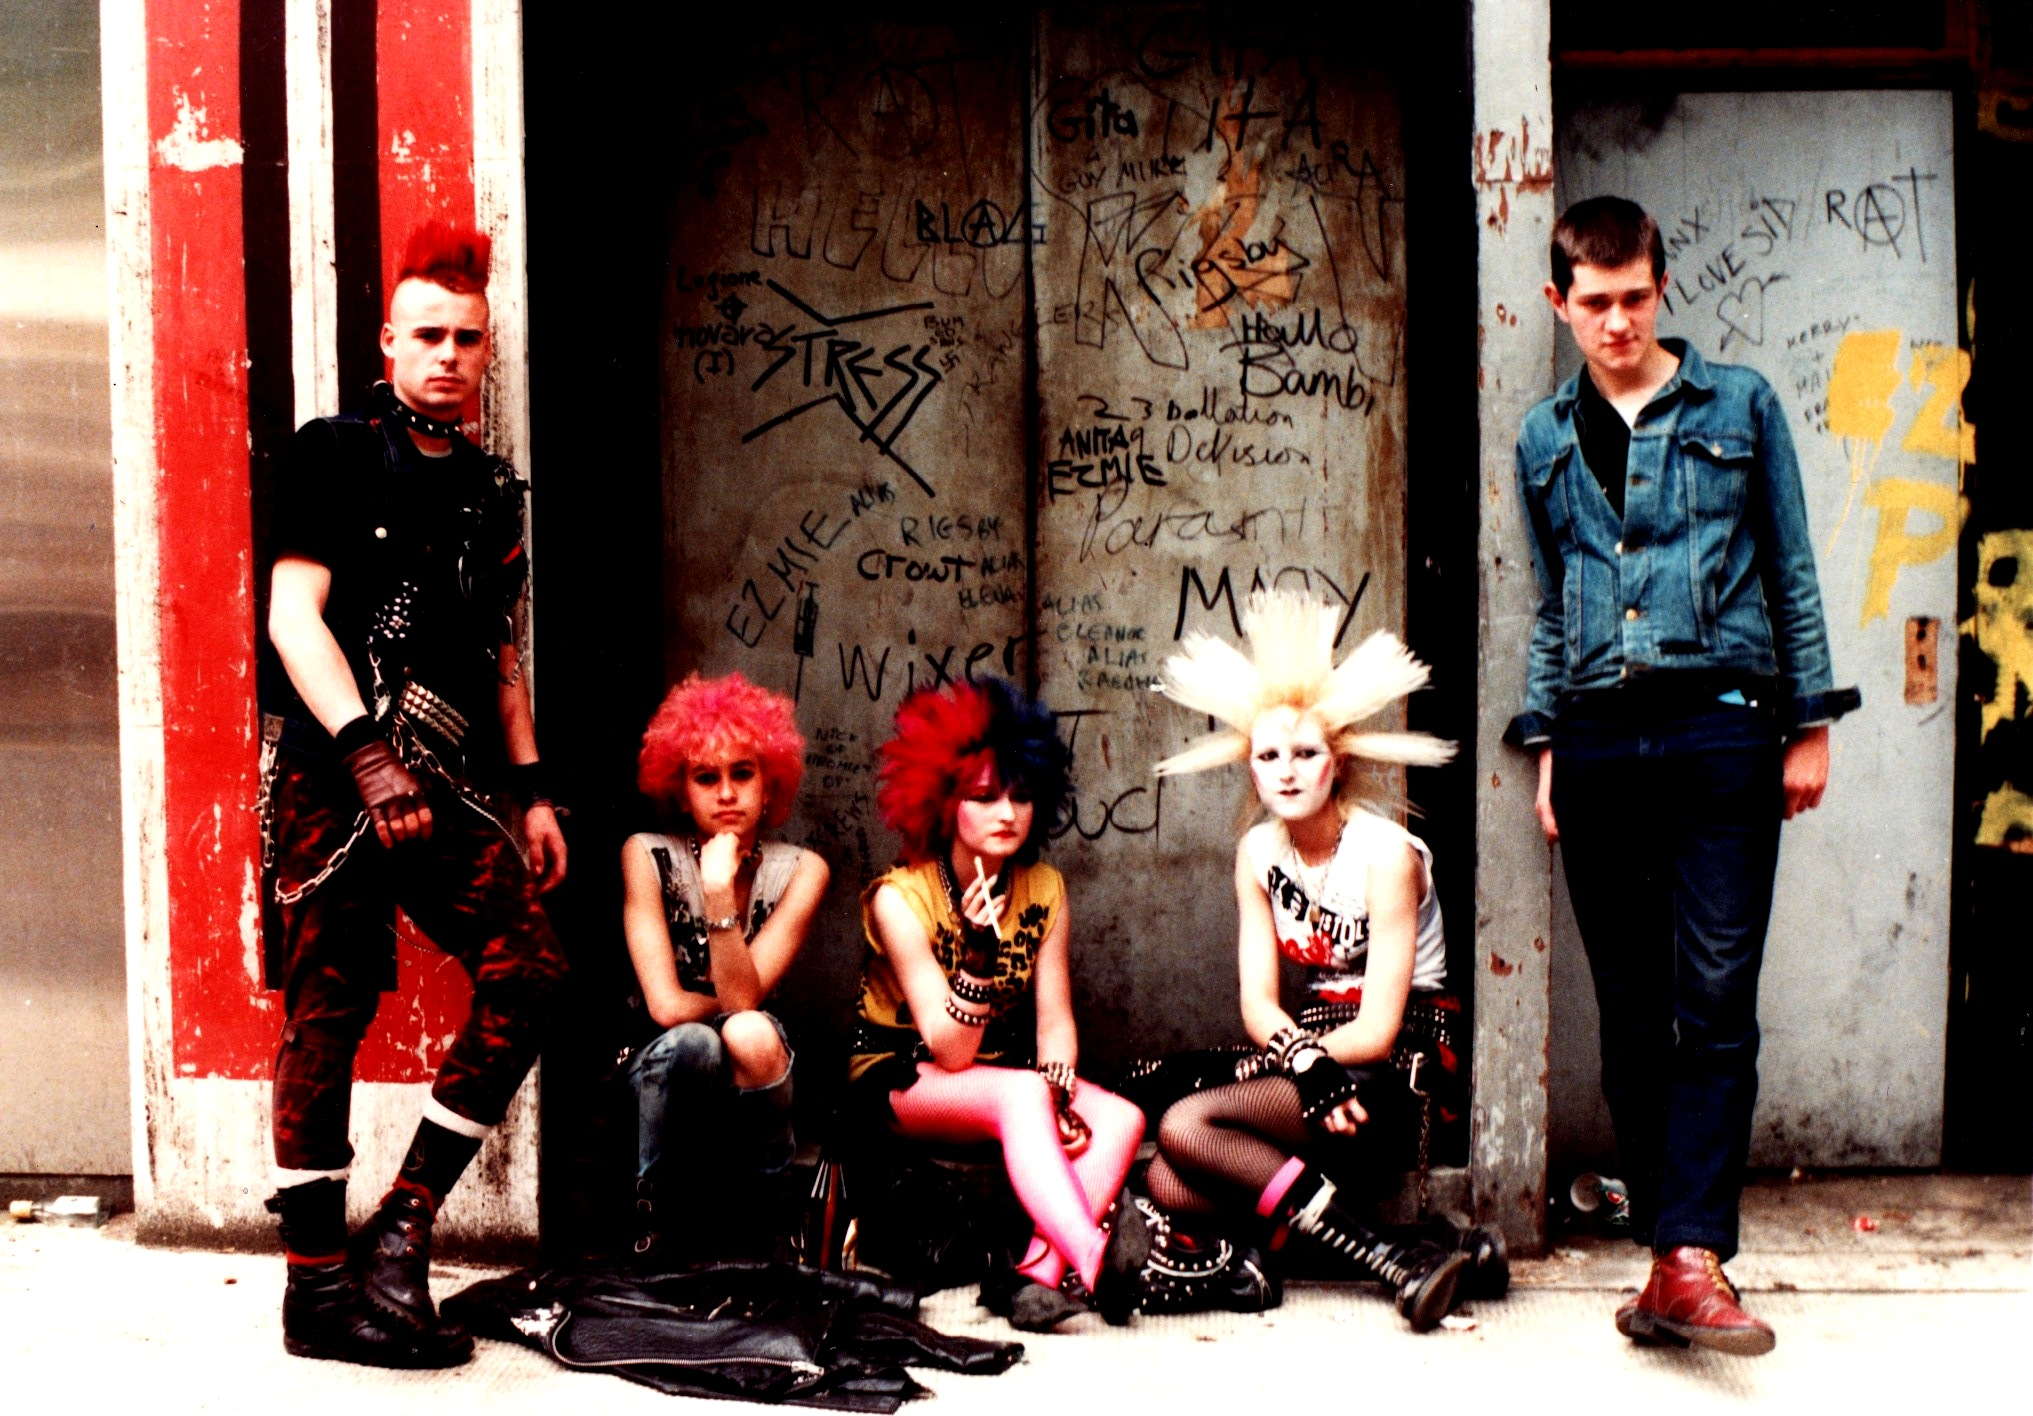 a description of punk which began in britain in the 1960